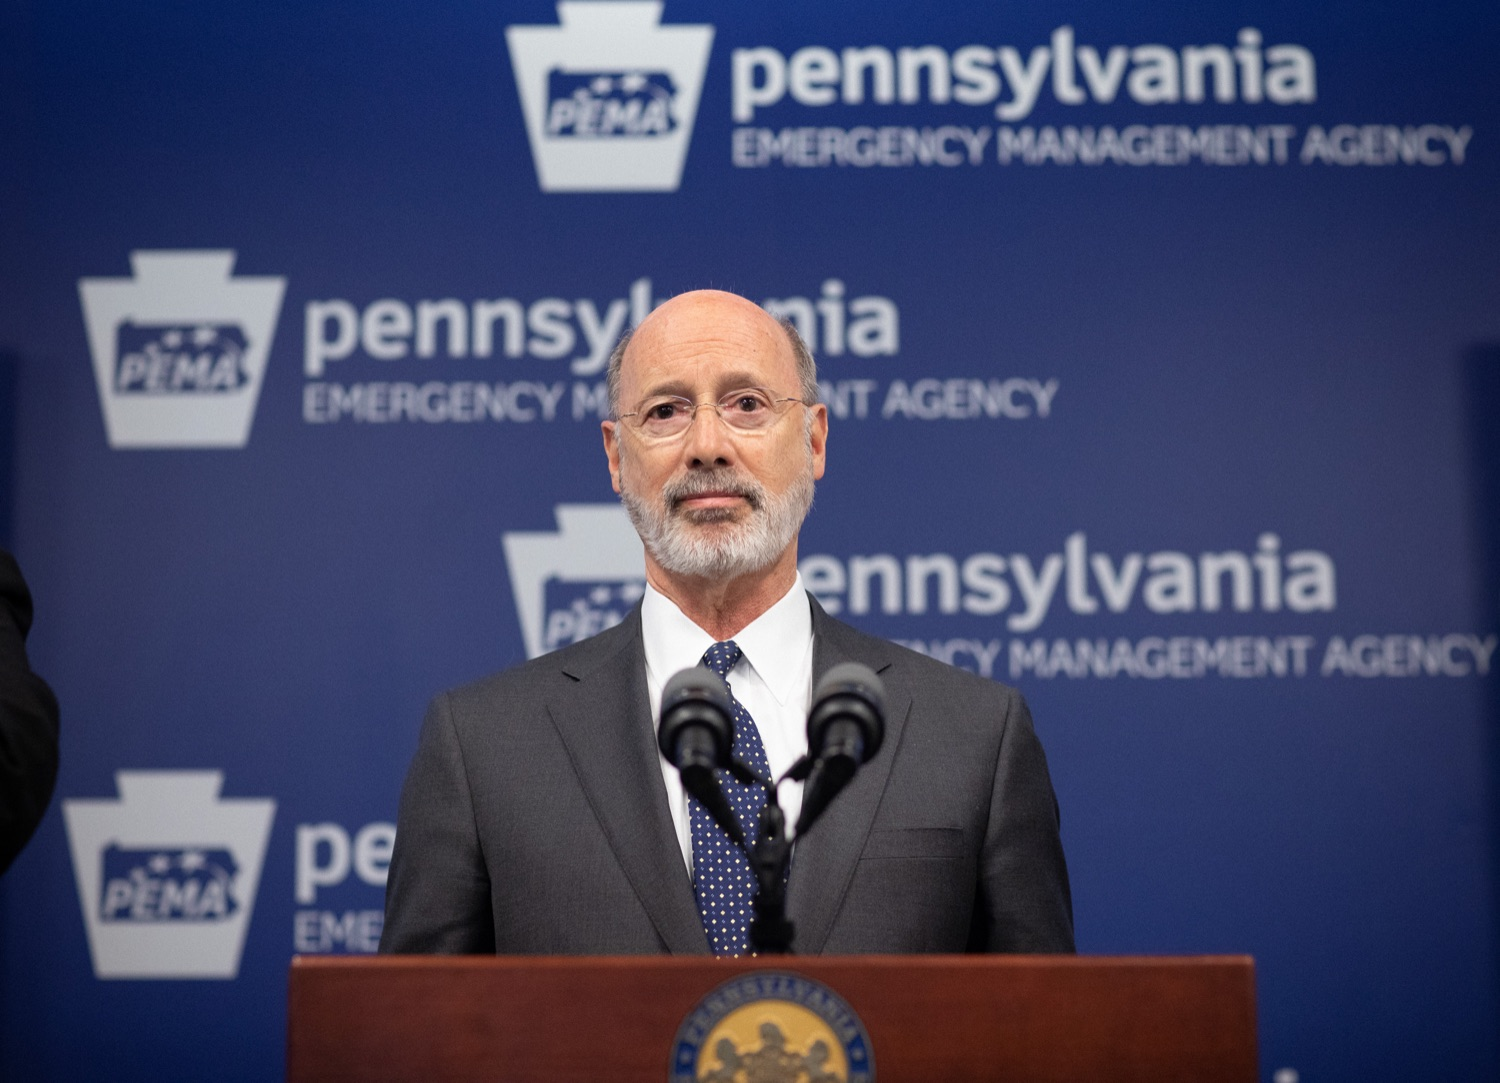 """<a href=""""https://filesource.wostreaming.net/commonwealthofpa/photo/17888_gov_covid19_update_dz_0007.jpg"""" target=""""_blank"""">⇣Download Photo<br></a>Governor Tom Wolf  speaking to reporters. Governor Tom Wolf and Secretary of Health Dr. Rachel Levine provided an update on the coronavirus known as COVID-19 and outline ongoing efforts to mitigate the virus in Pennsylvania. The Department of Health anticipates that there will be more Pennsylvanians who test positive for COVID-19 in the coming days and weeks and it is important for residents to know the commonwealth is prepared and to be prepared themselves. People have a higher chance of testing positive for COVID-19 if they have traveled to a country or state with known community outbreaks or have come in contact with someone who has the virus. The Wolf Administration is working with the health care community across Pennsylvania to keep them informed, consult on patient testing, and ensure they have the resources they need to care for patients. .March 16, 2020  Harrisburg Pa."""